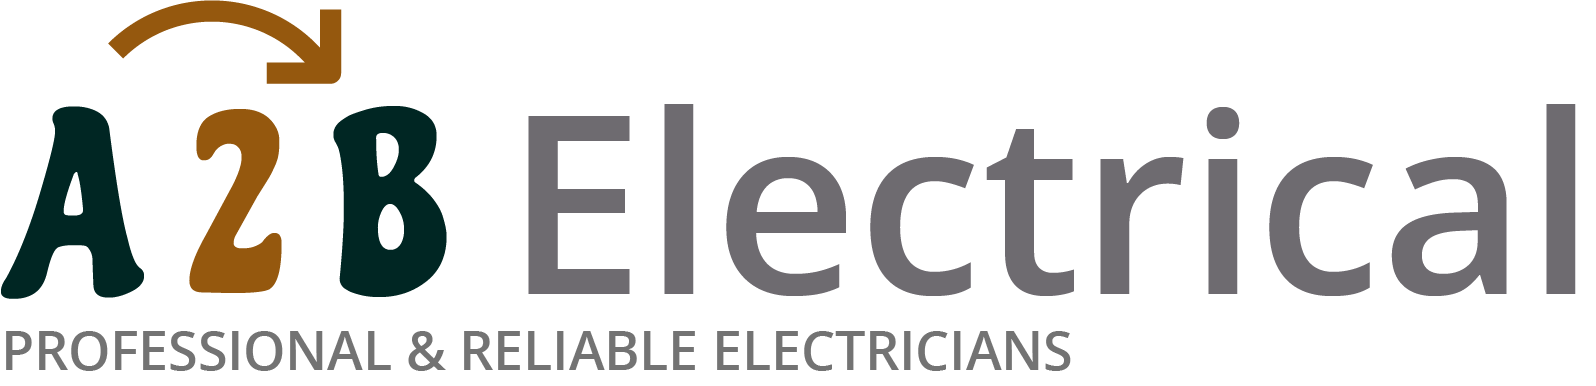 If you have electrical wiring problems in Feltham, we can provide an electrician to have a look for you.